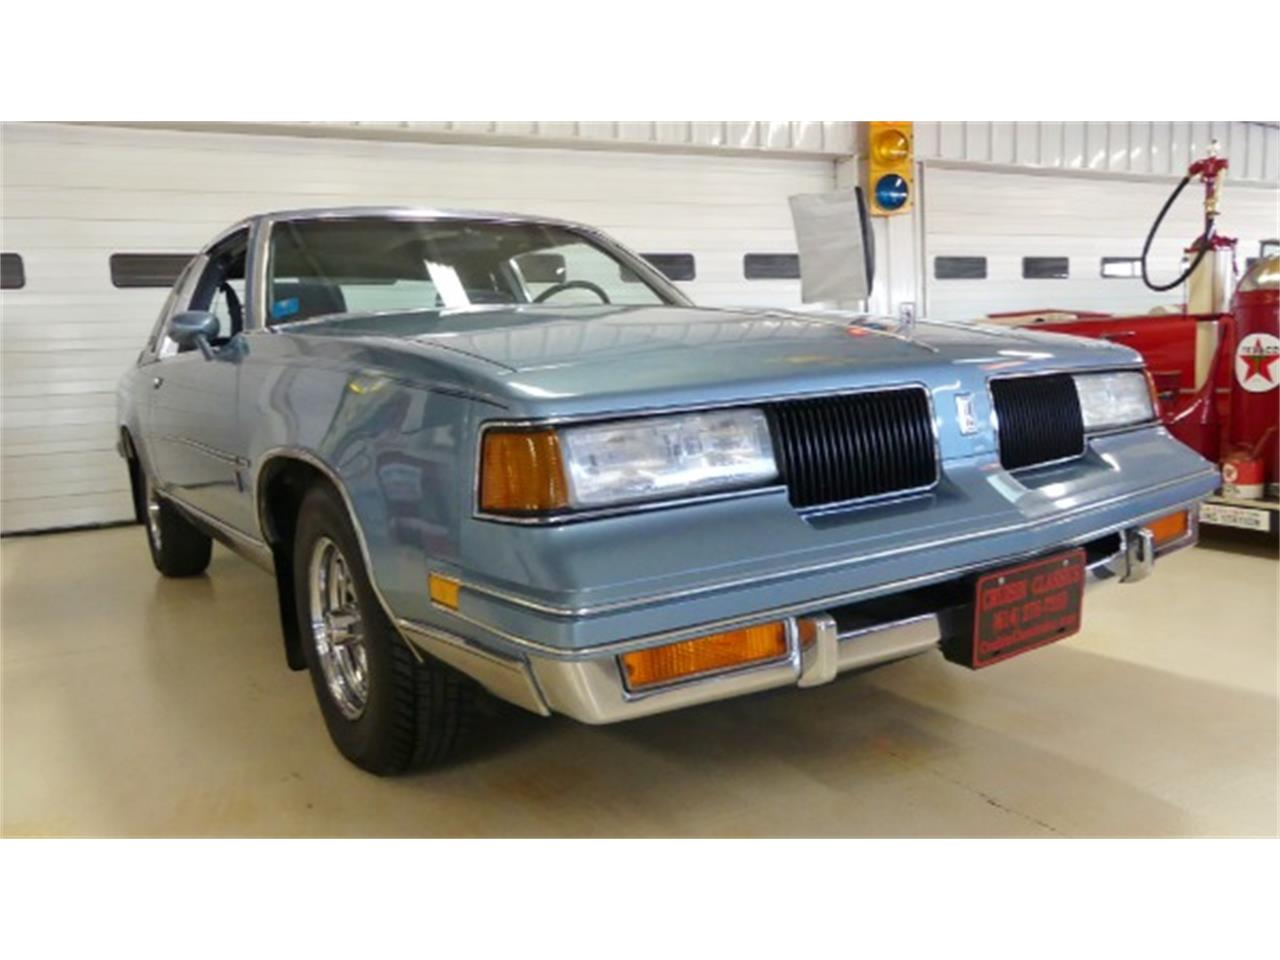 Large Picture of '87 Cutlass S located in Ohio - $13,495.00 - MFUL